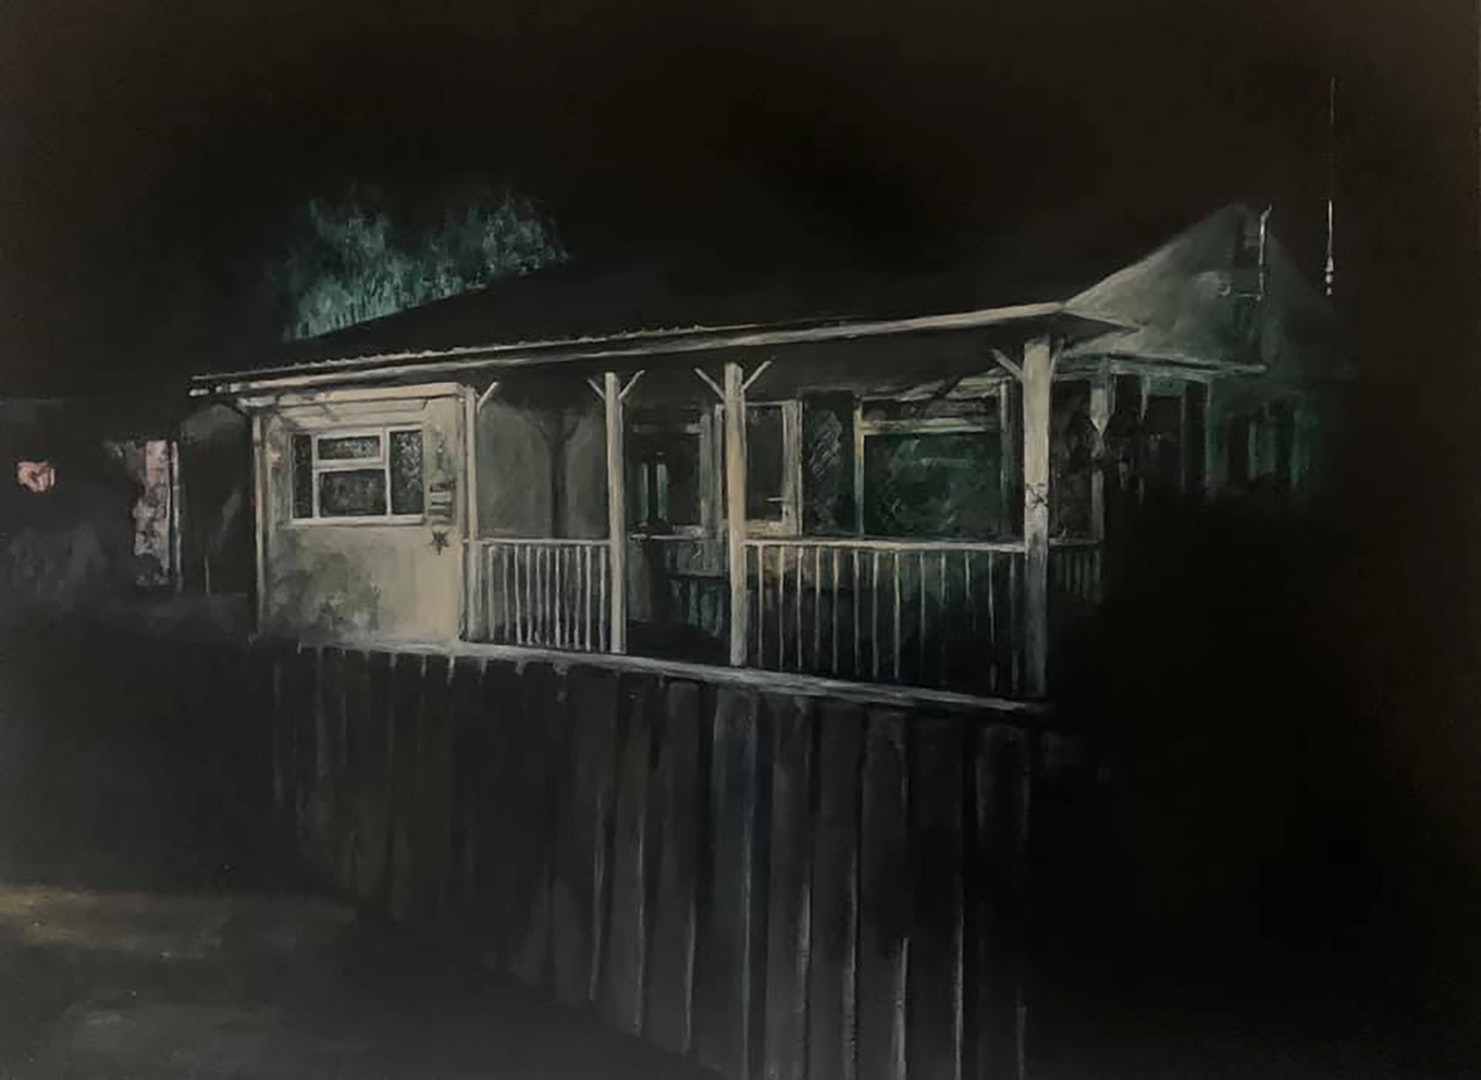 'Night Fitties: I only come here when the weather's good', Judith Tucker, Oil on linen, 60 x 80 cm